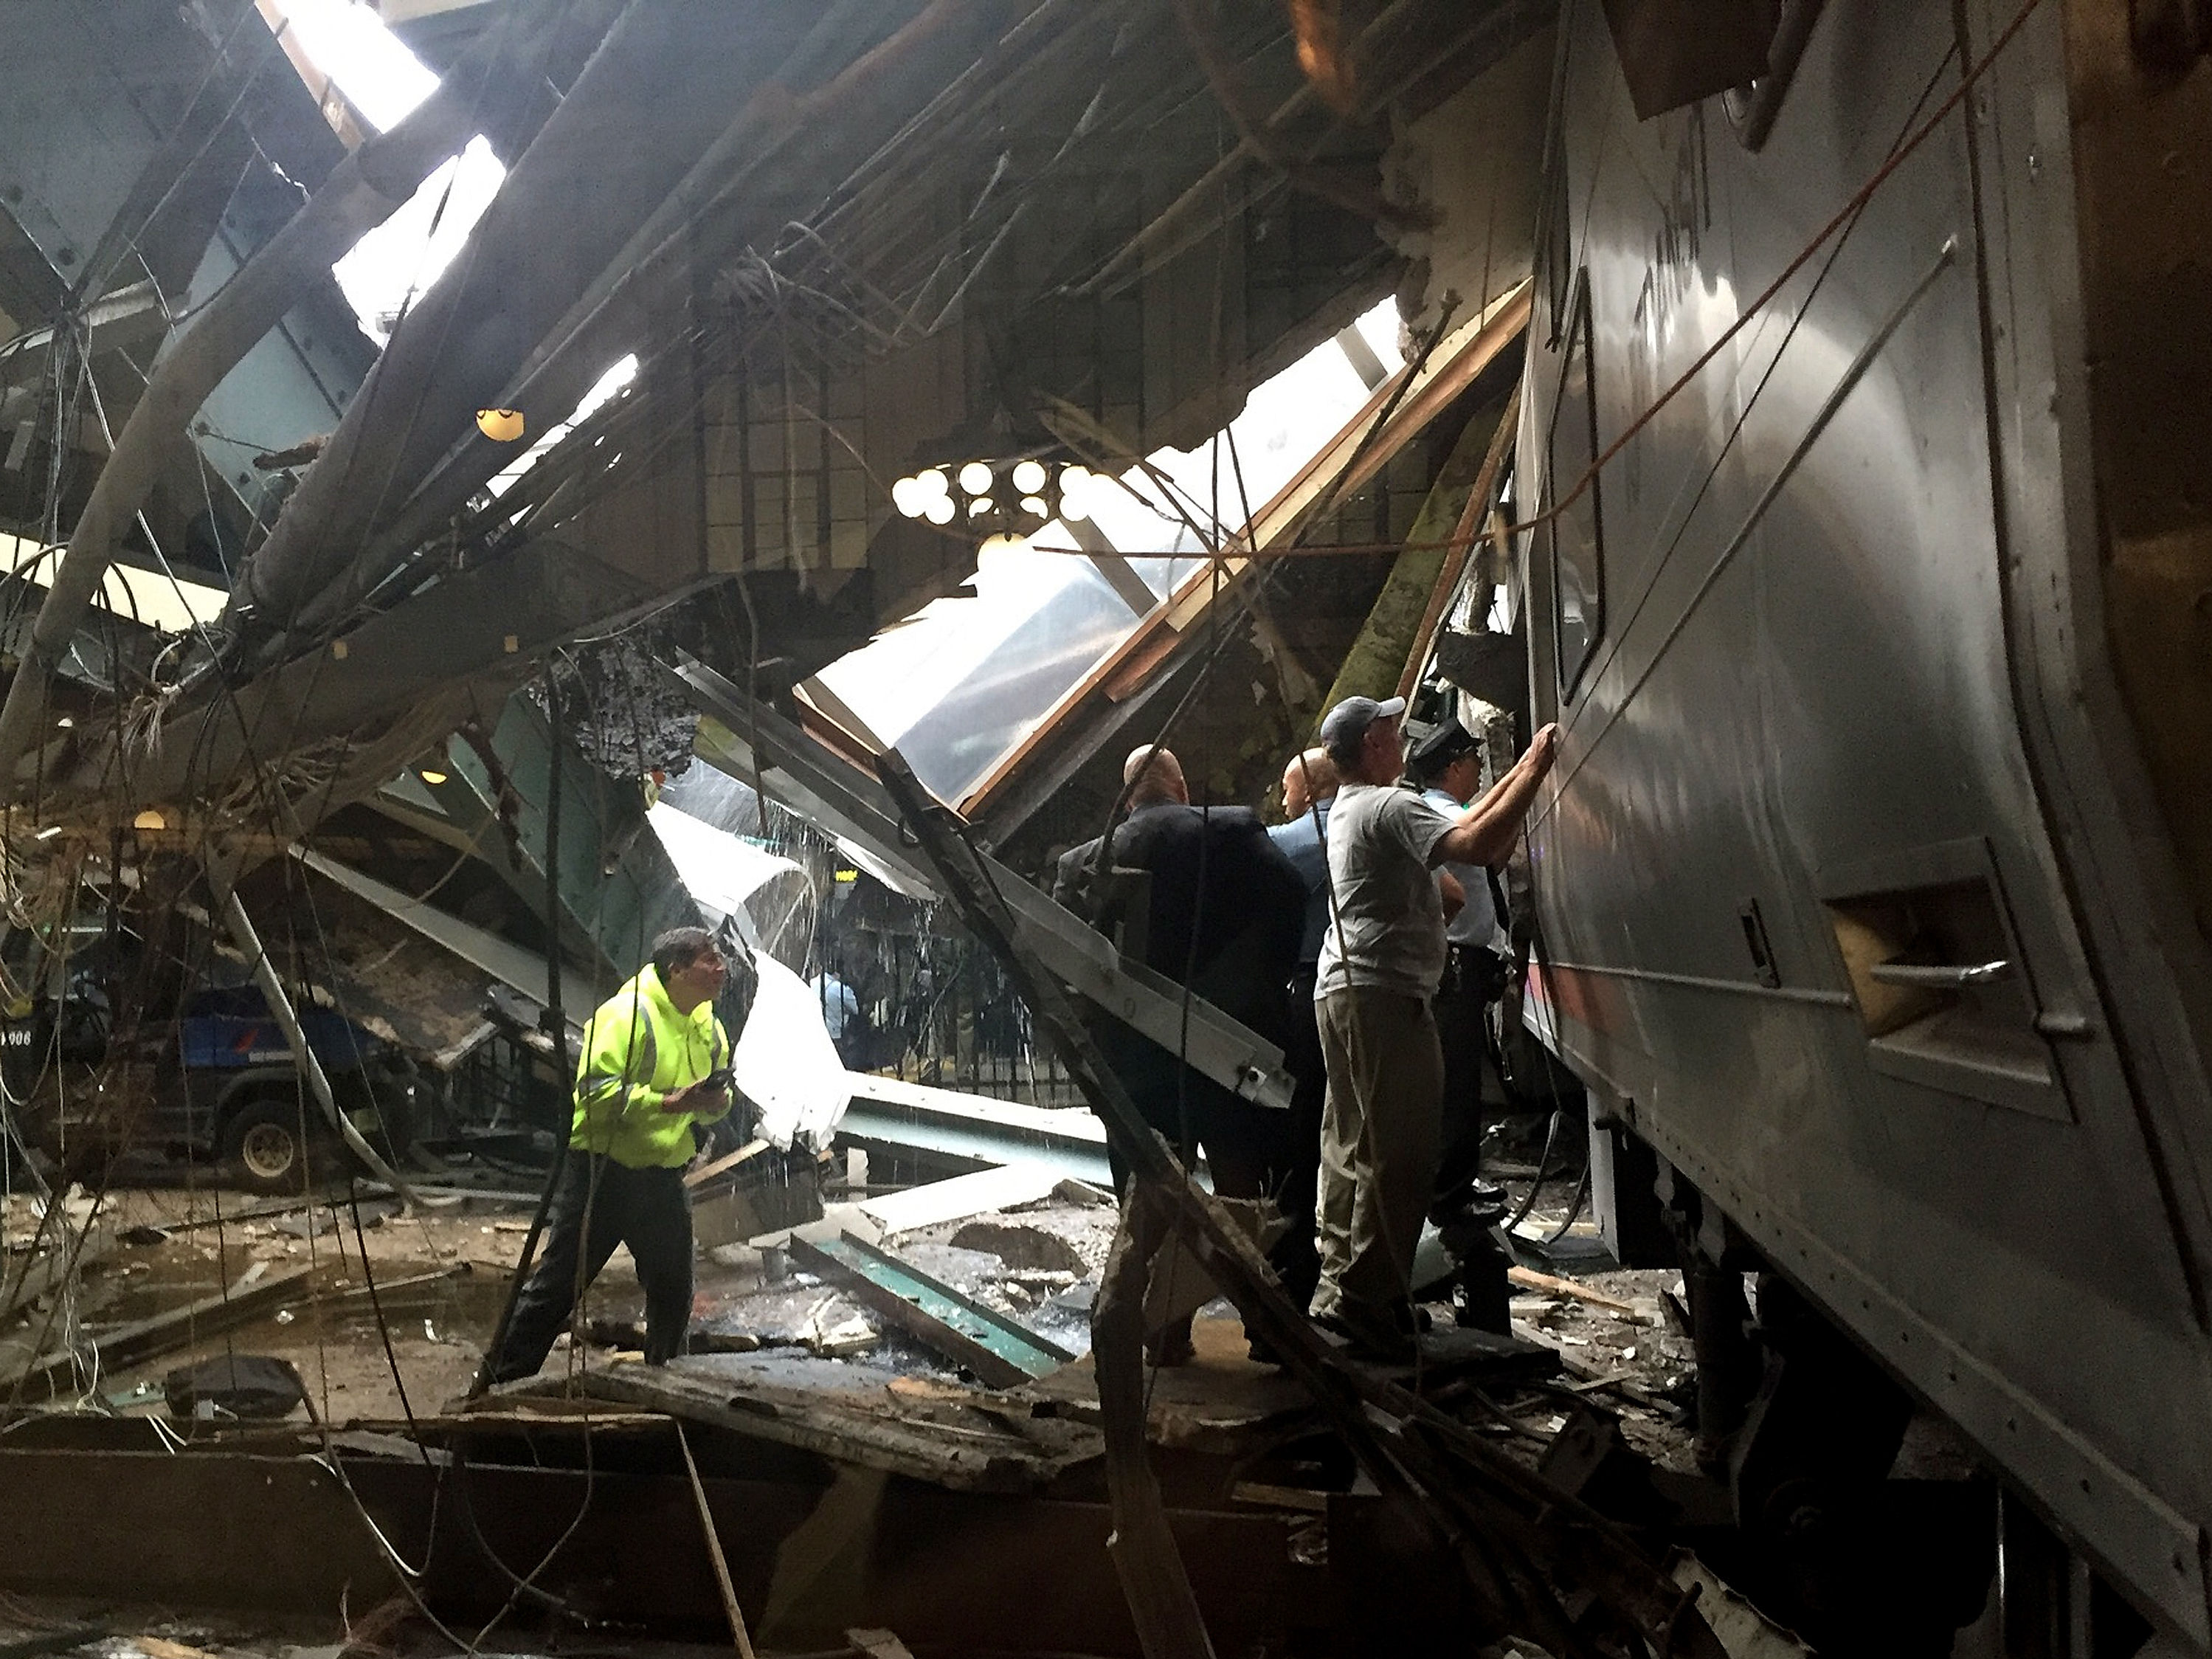 Train personnel survey the New Jersey Transit train that crashed into the platform at Hoboken Terminal on Thursday. (Photo by Pancho Bernasconi/Getty Images)